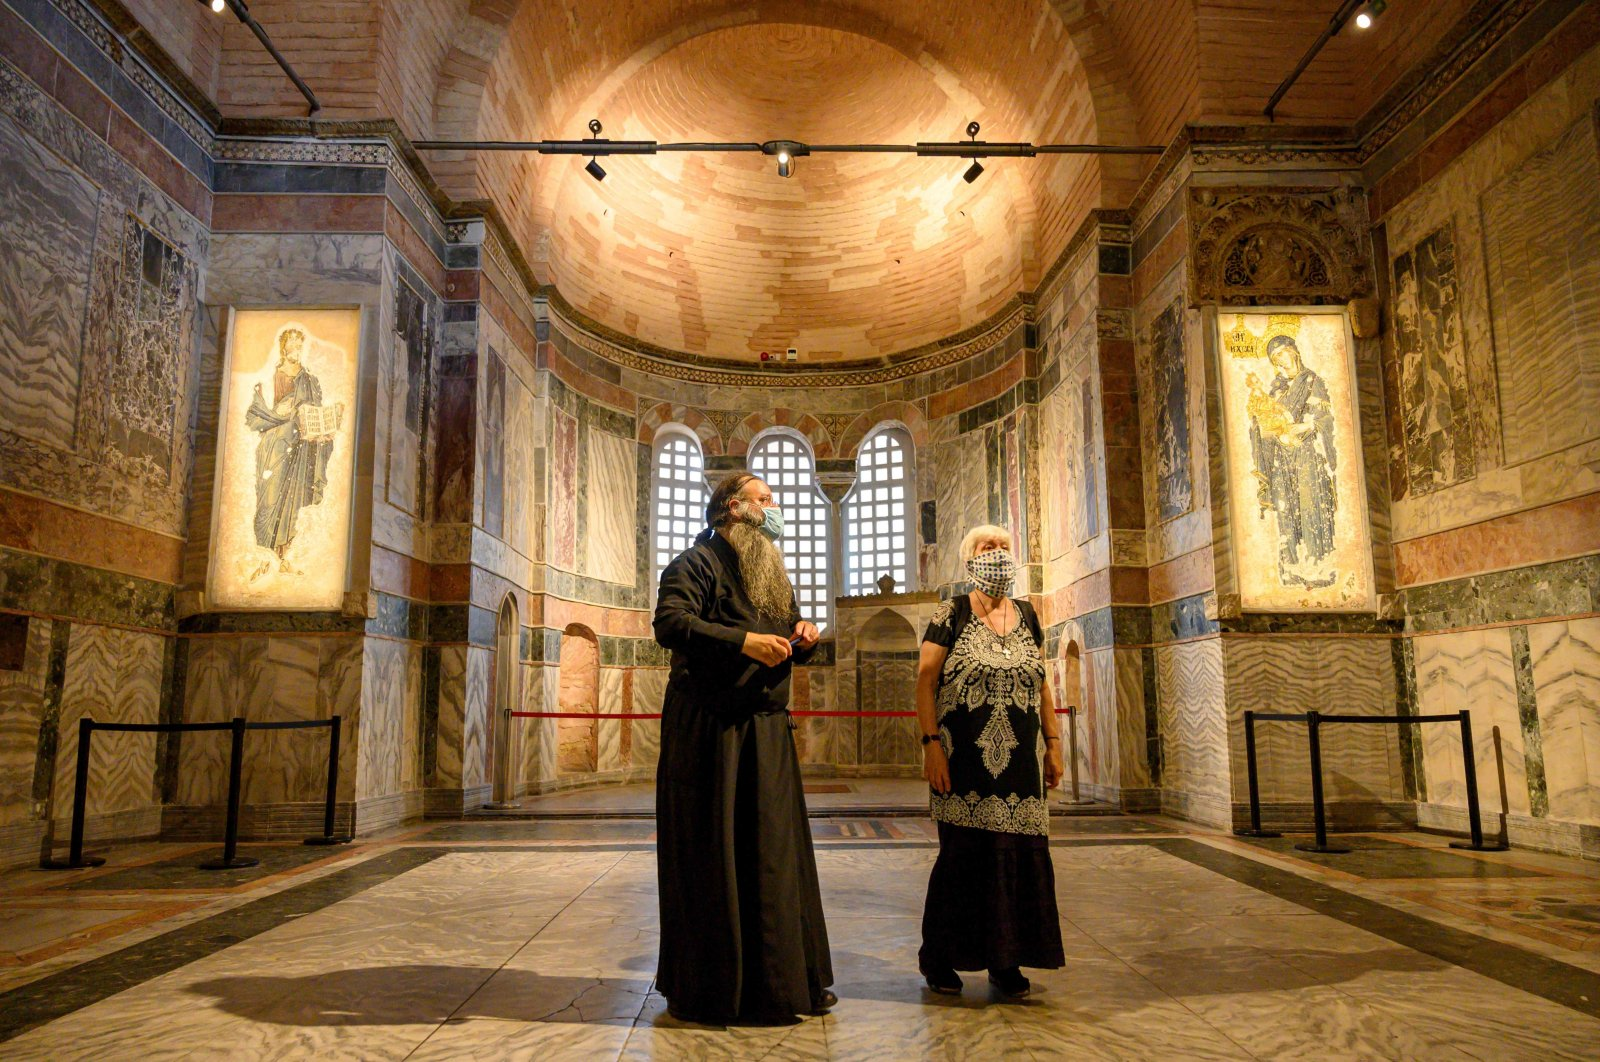 Two visitors admire the inside of Kariye Museum, in Istanbul, Turkey, Aug. 21, 2020. (AFP Photo)